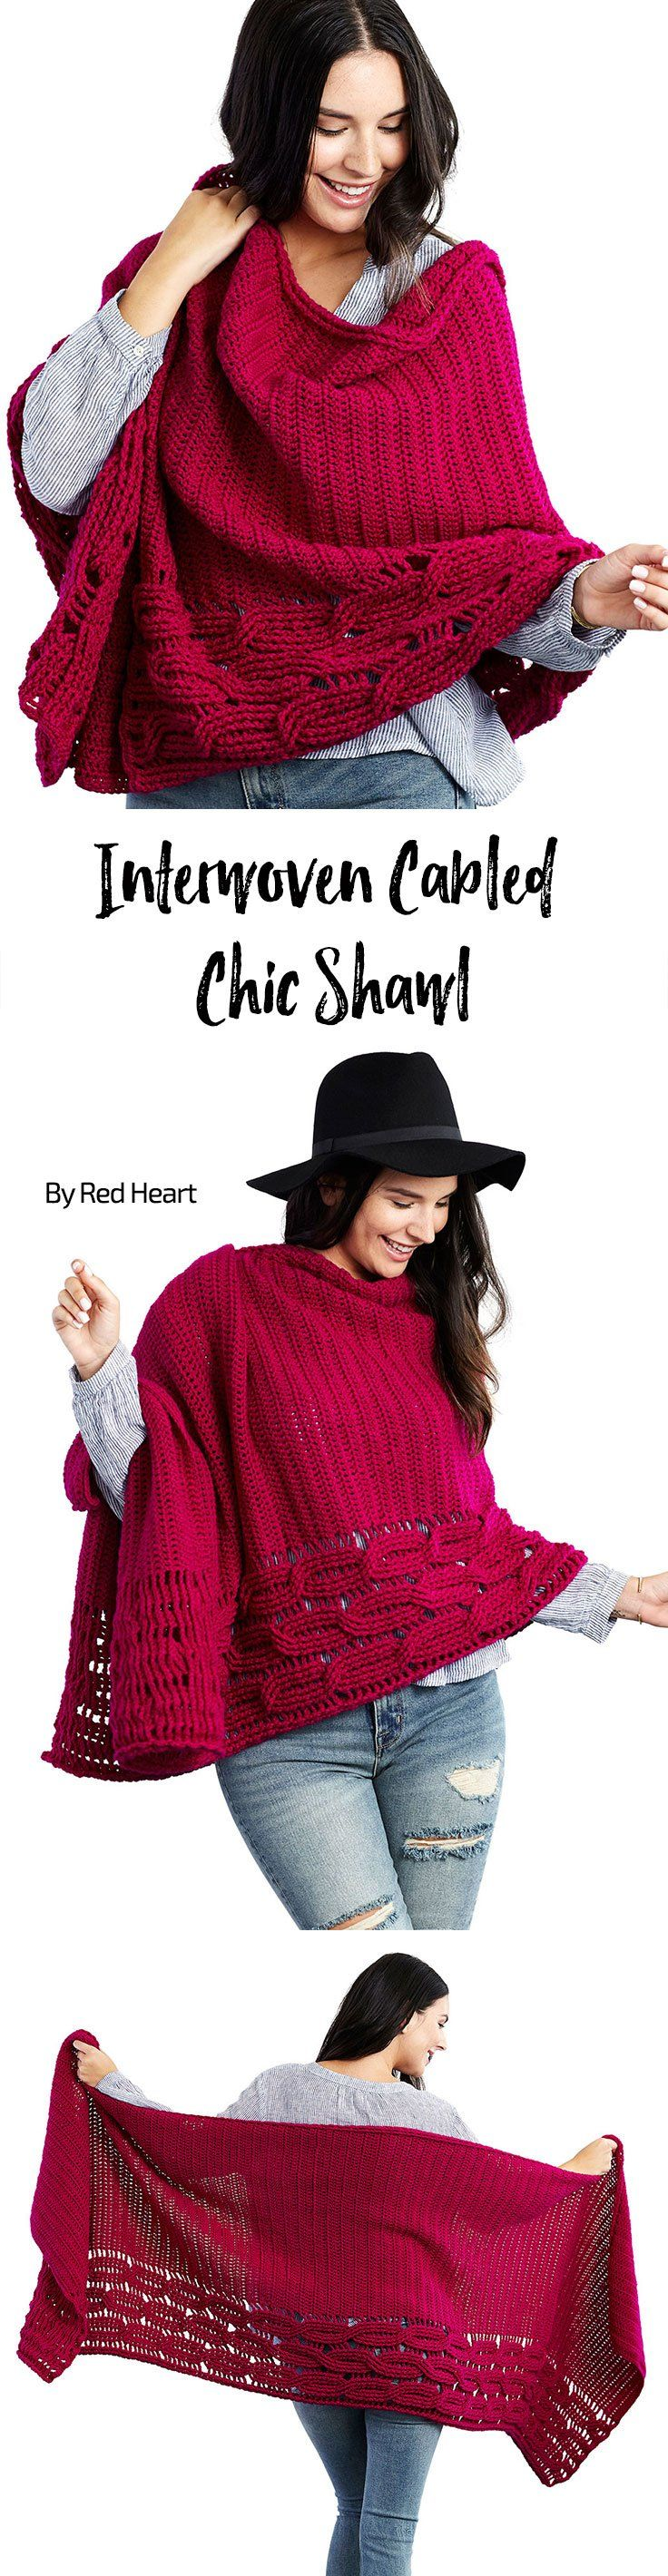 Interwoven Cabled Shawl free crochet pattern in Chic Sheep Merino Wool yarn.